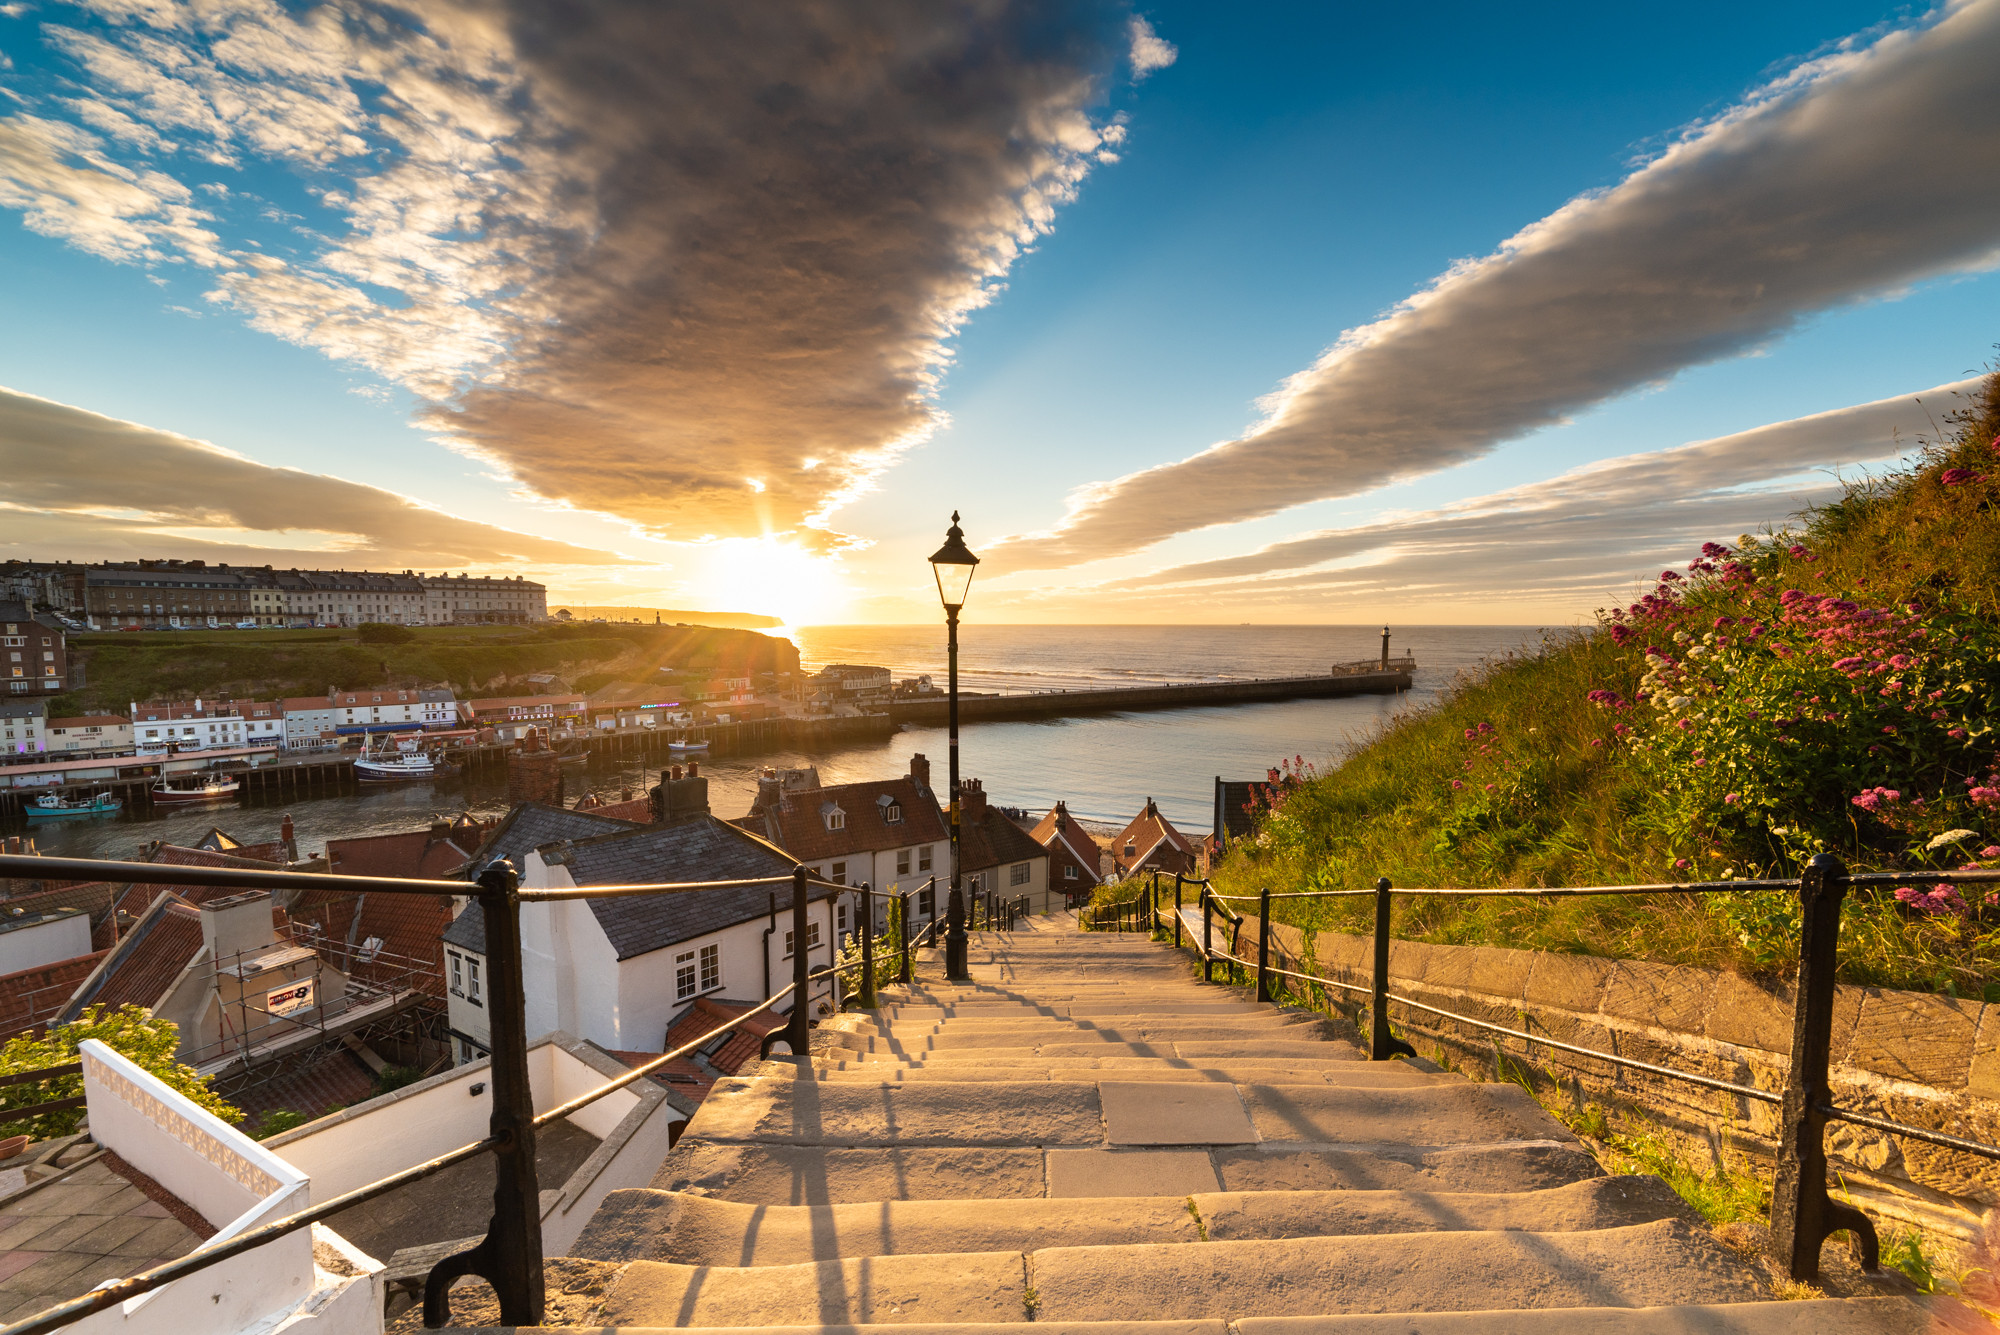 Whitby night photography group course